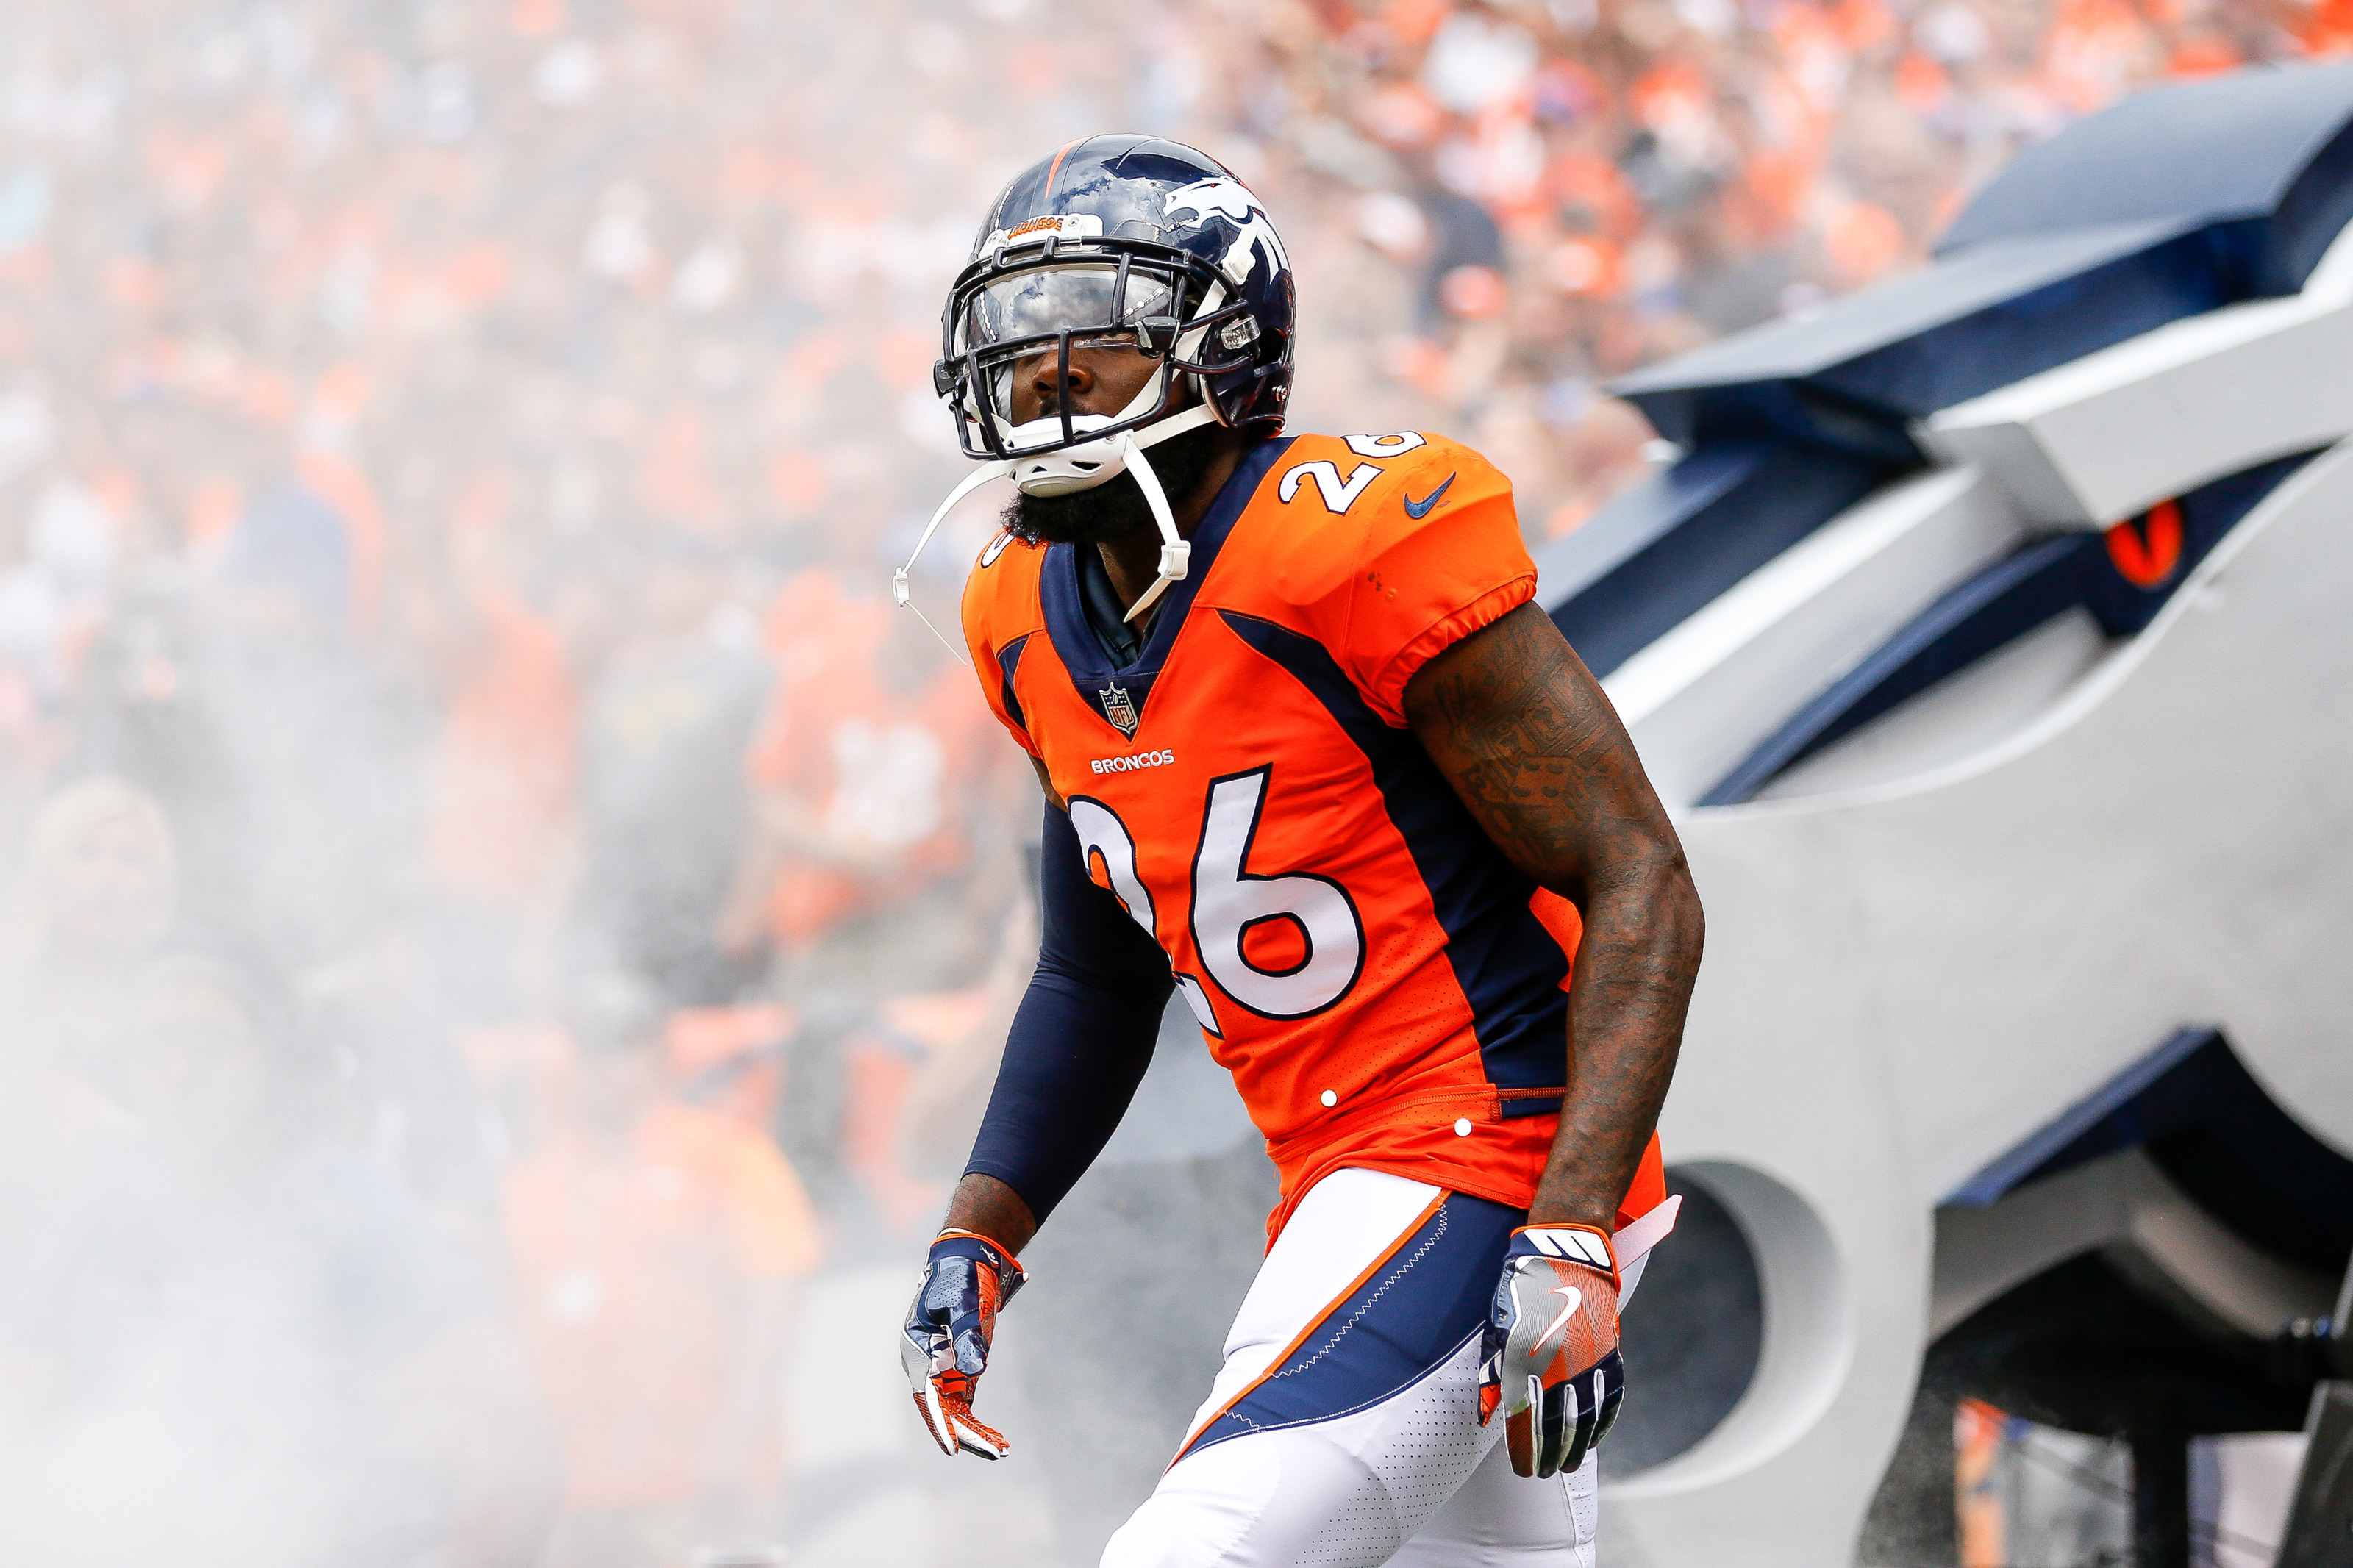 Darian Stewart's top five moments with the Denver Broncos